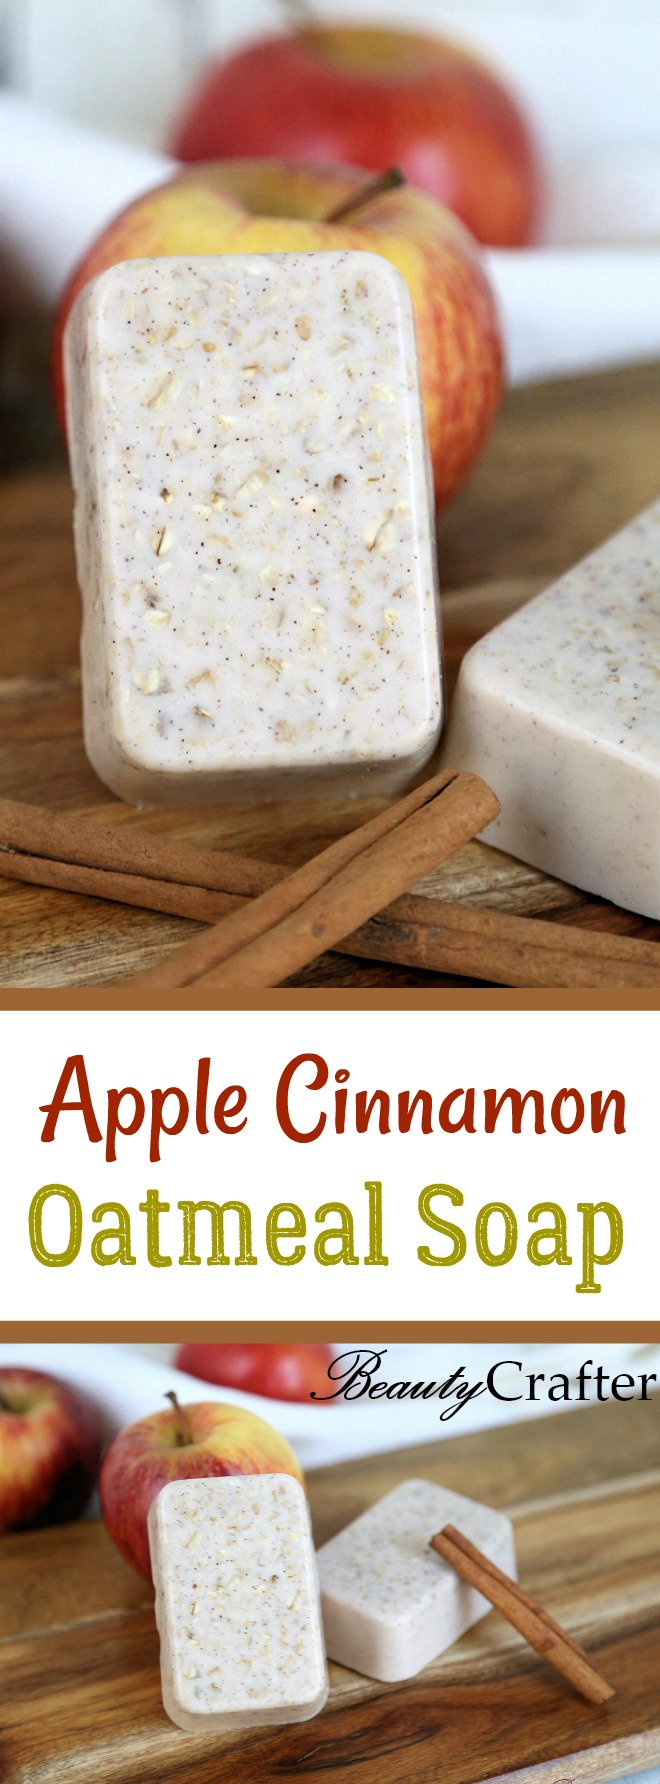 Apple Cinnamon Oatmeal Soap Recipe - easy DIY oatmeal soap